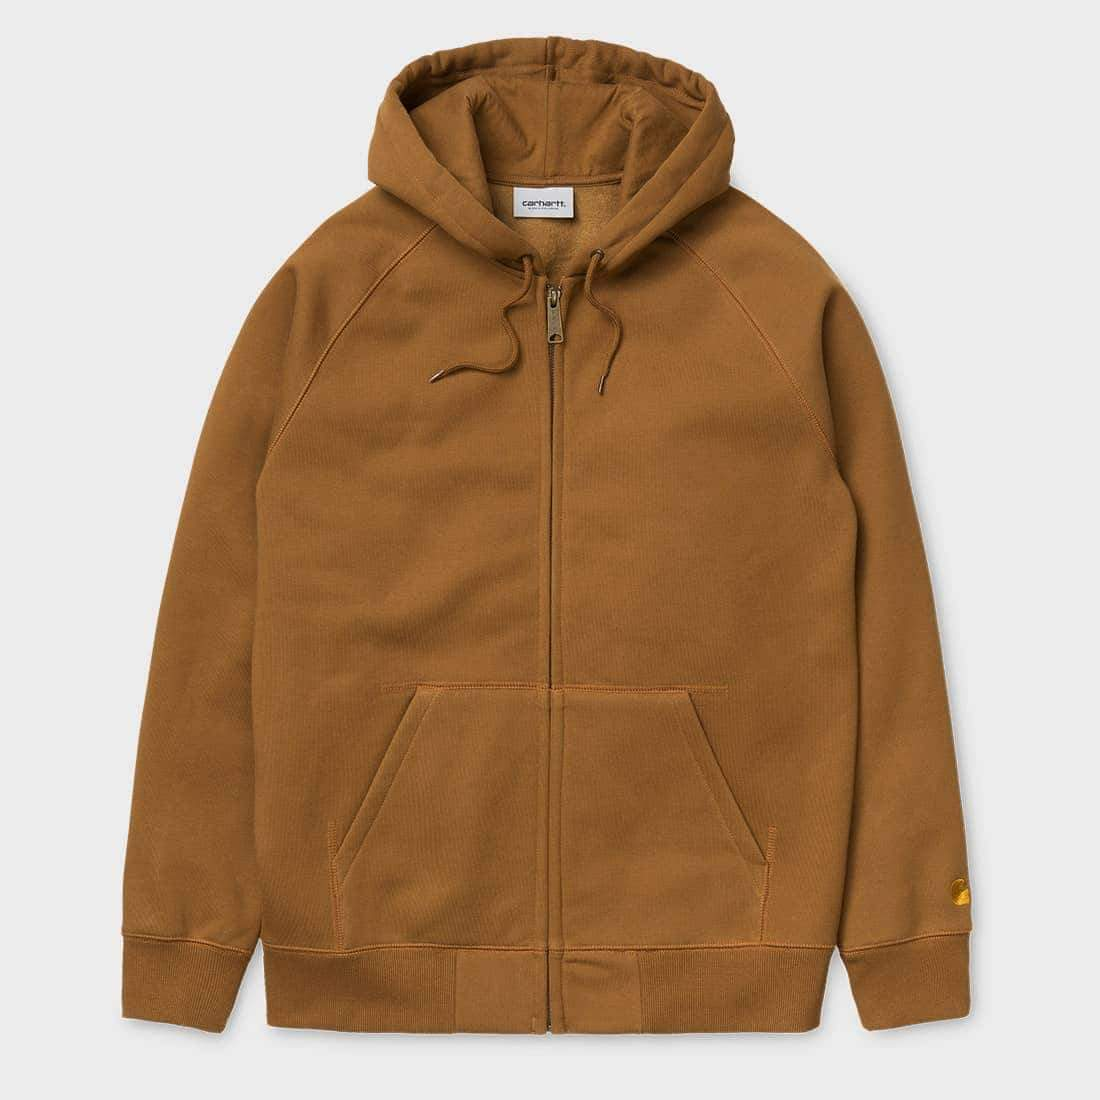 Carhartt WIP Hooded Chase Jacket Hamilton Brown / Gold